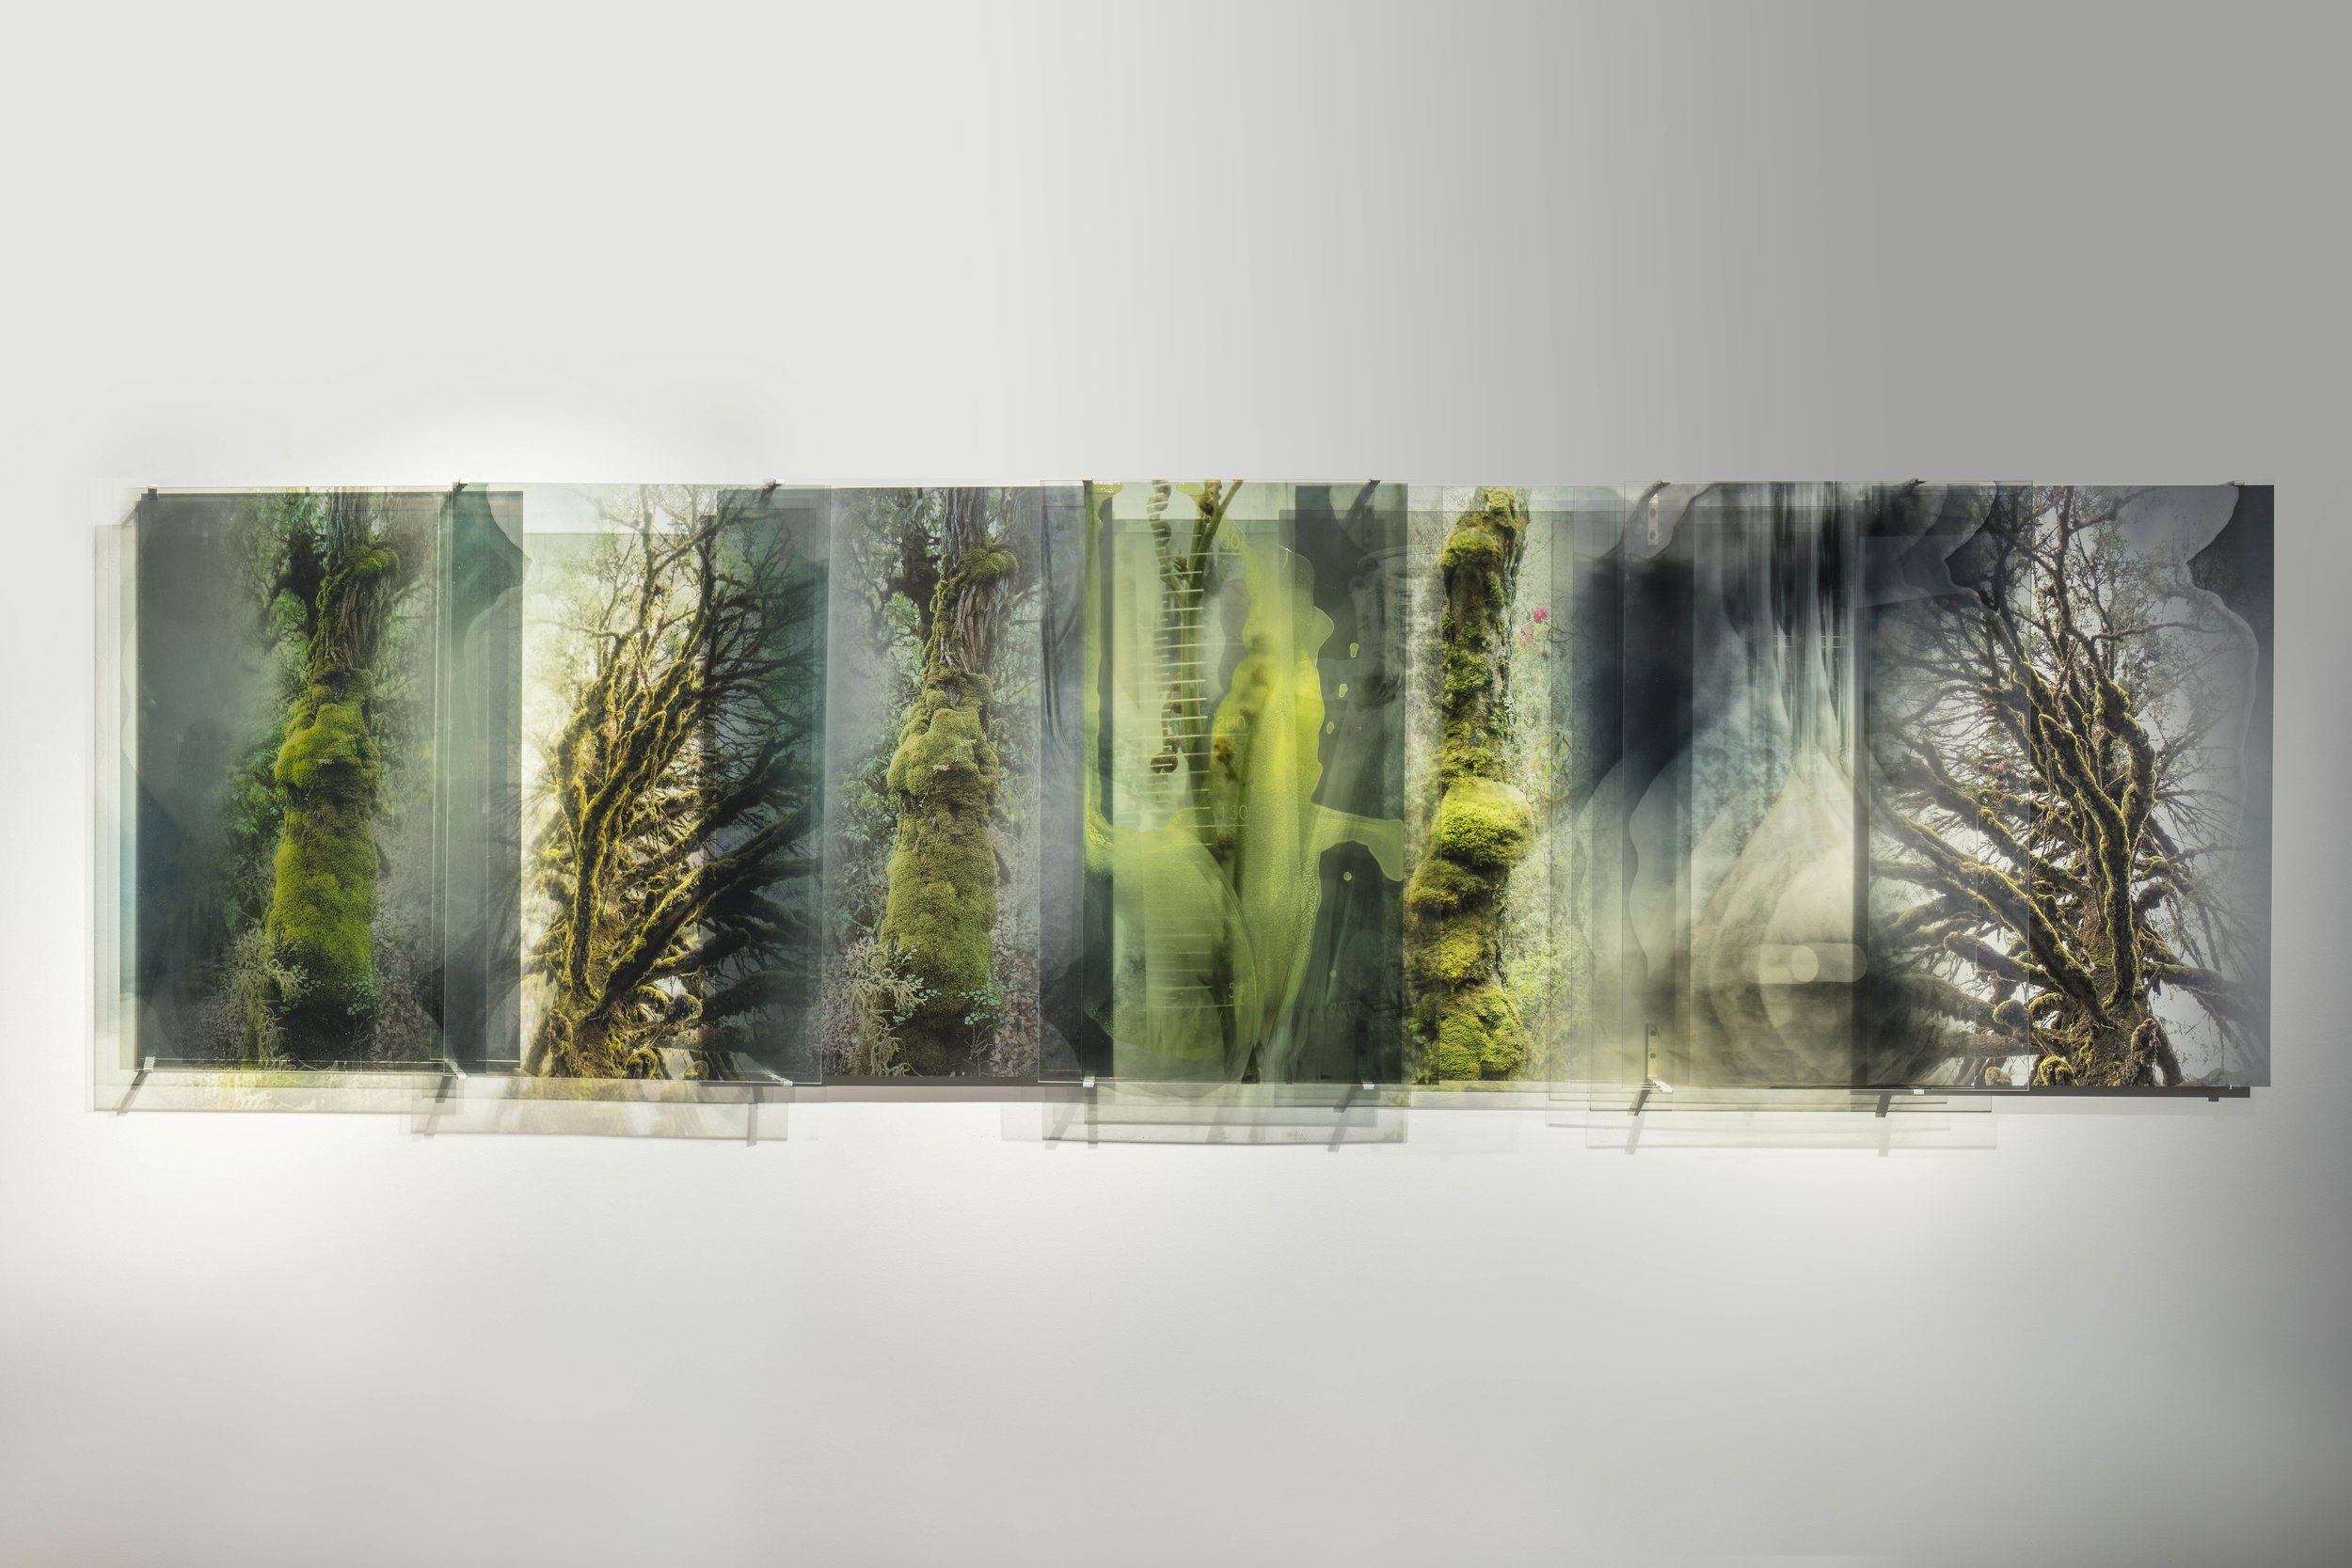 JANET LAURENCE   Sacred Green,  from the series  Chlorophyll Collapse.   2018 Diabond mirror, dye sublimation archival print onto Chromaluxe aluminium and C type silver halide print on clear polyester  and oil glaze on acrylic 100 x 370 cm